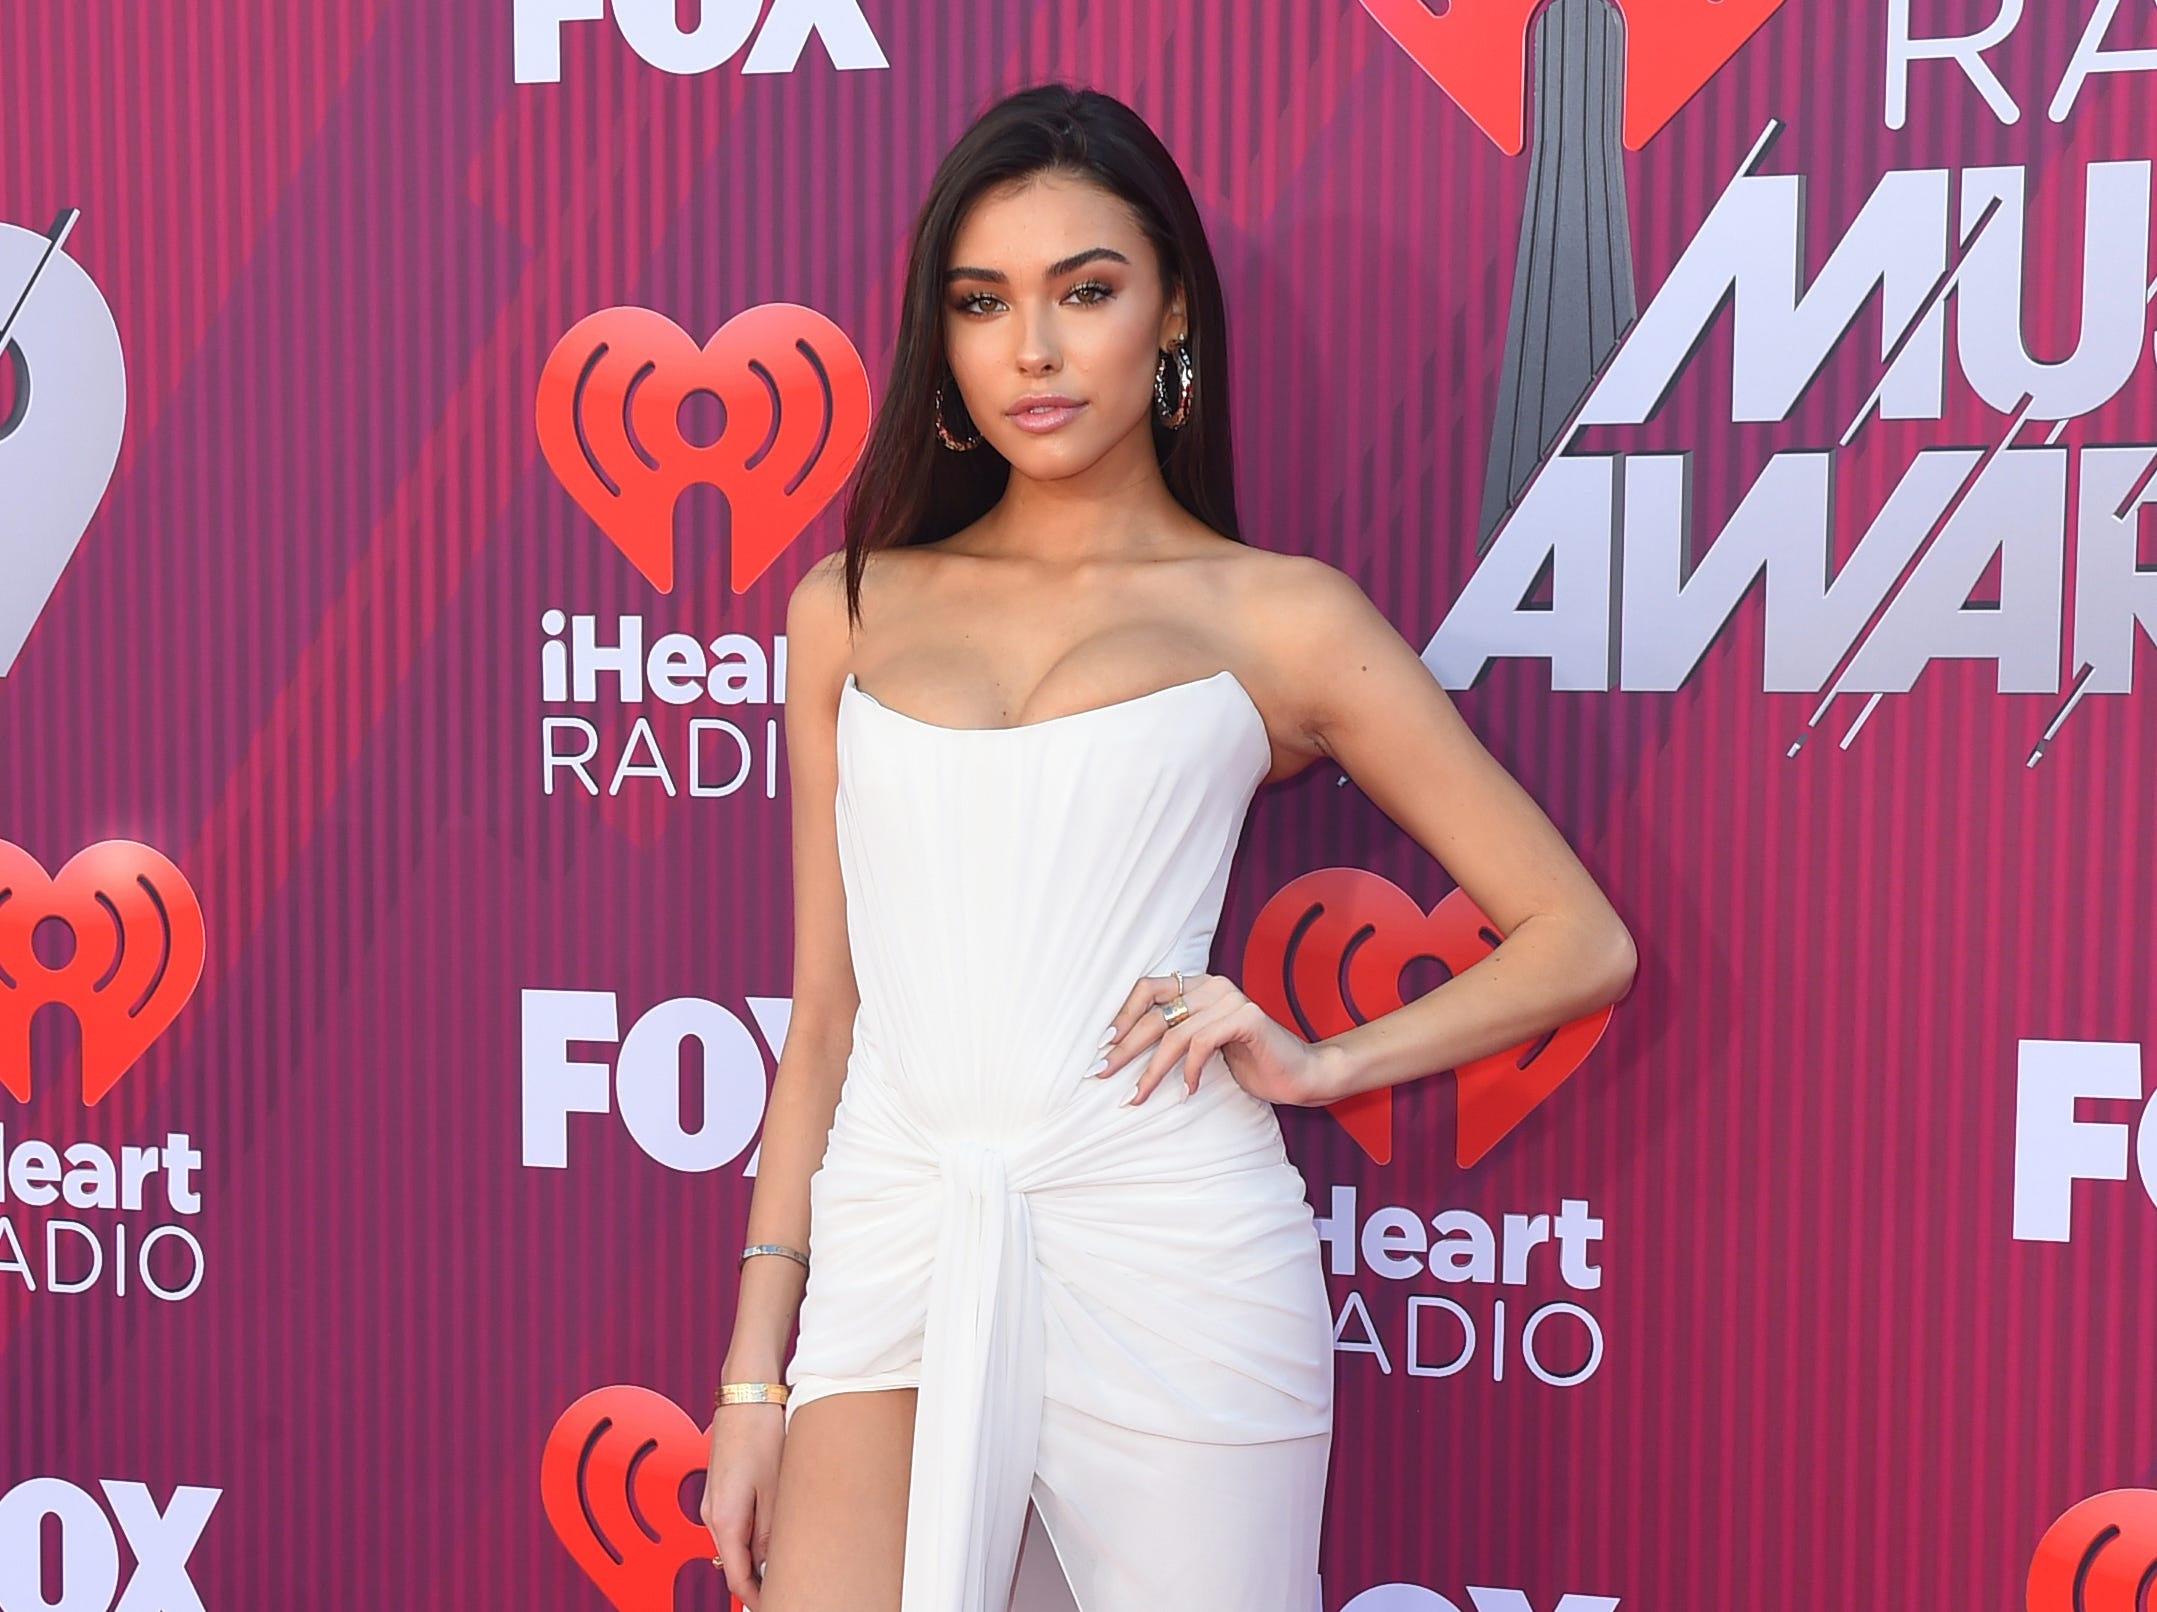 Madison Beer arrives at the iHeartRadio Music Awards.